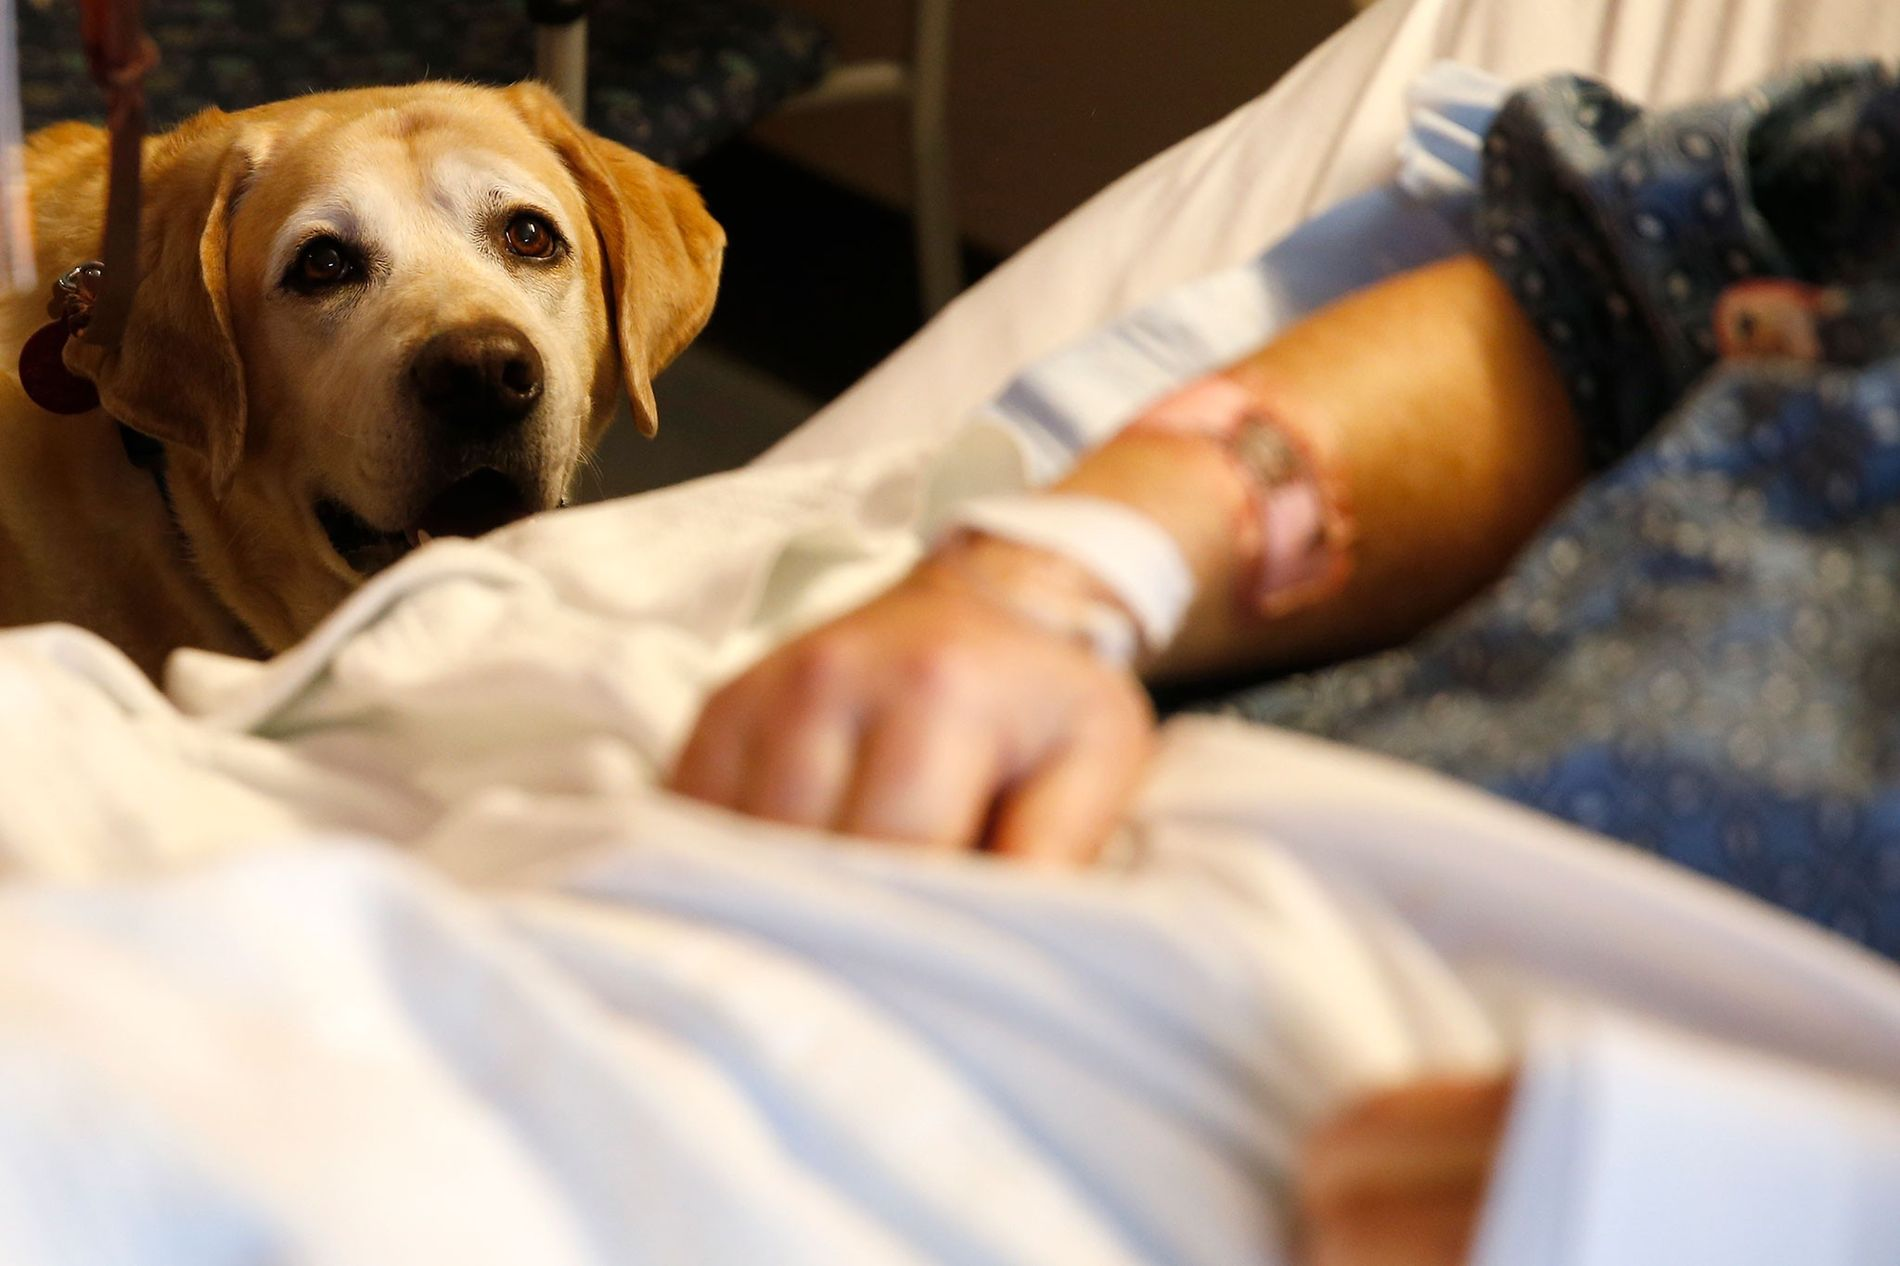 A therapy dog named Tucker visits with patient Jim Cawley at Massachusetts General Hospital in Boston on March 6, 2018.